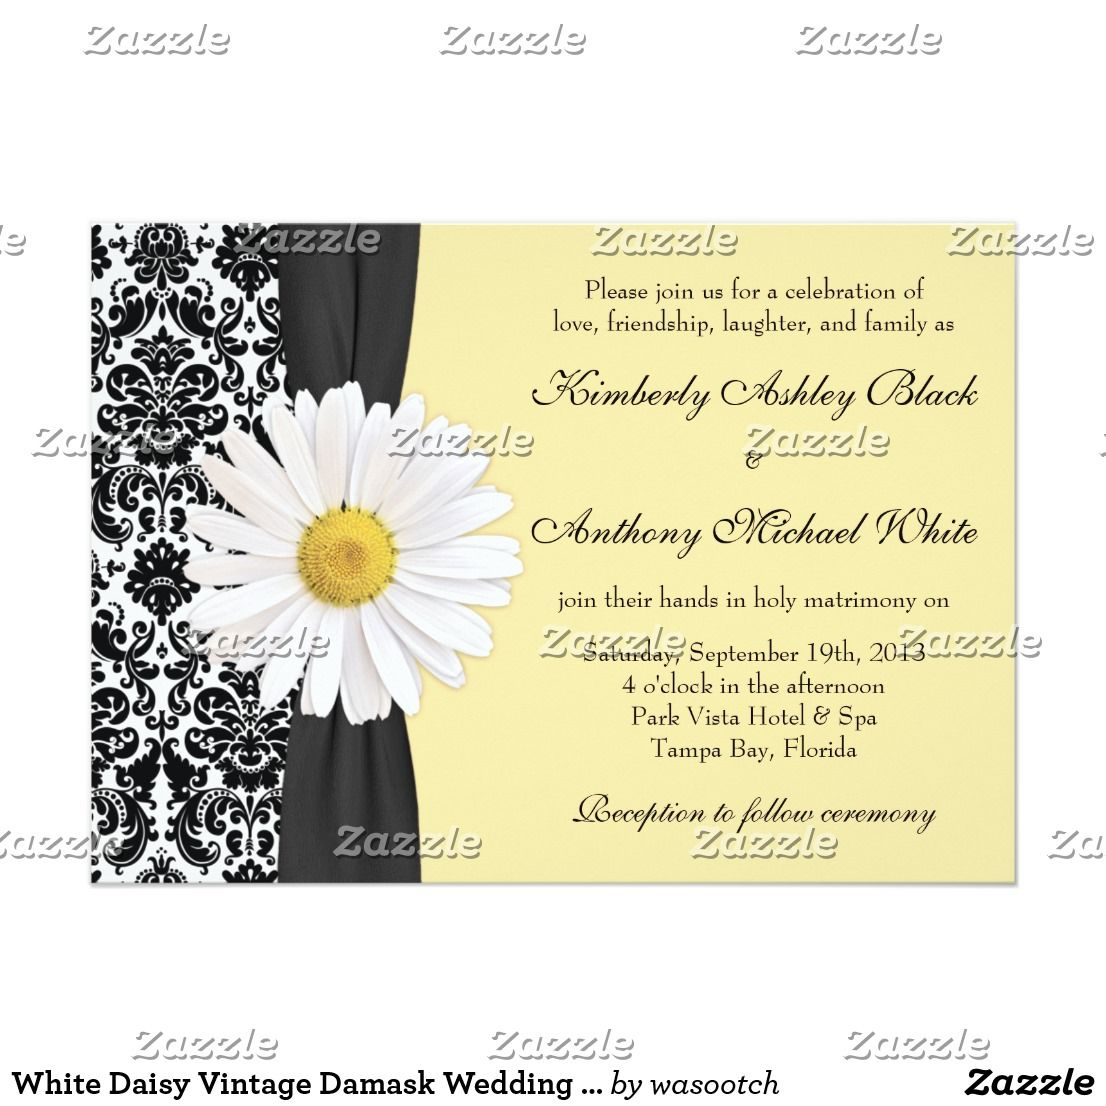 White Daisy Vintage Damask Wedding Invitation The Text On This Chic